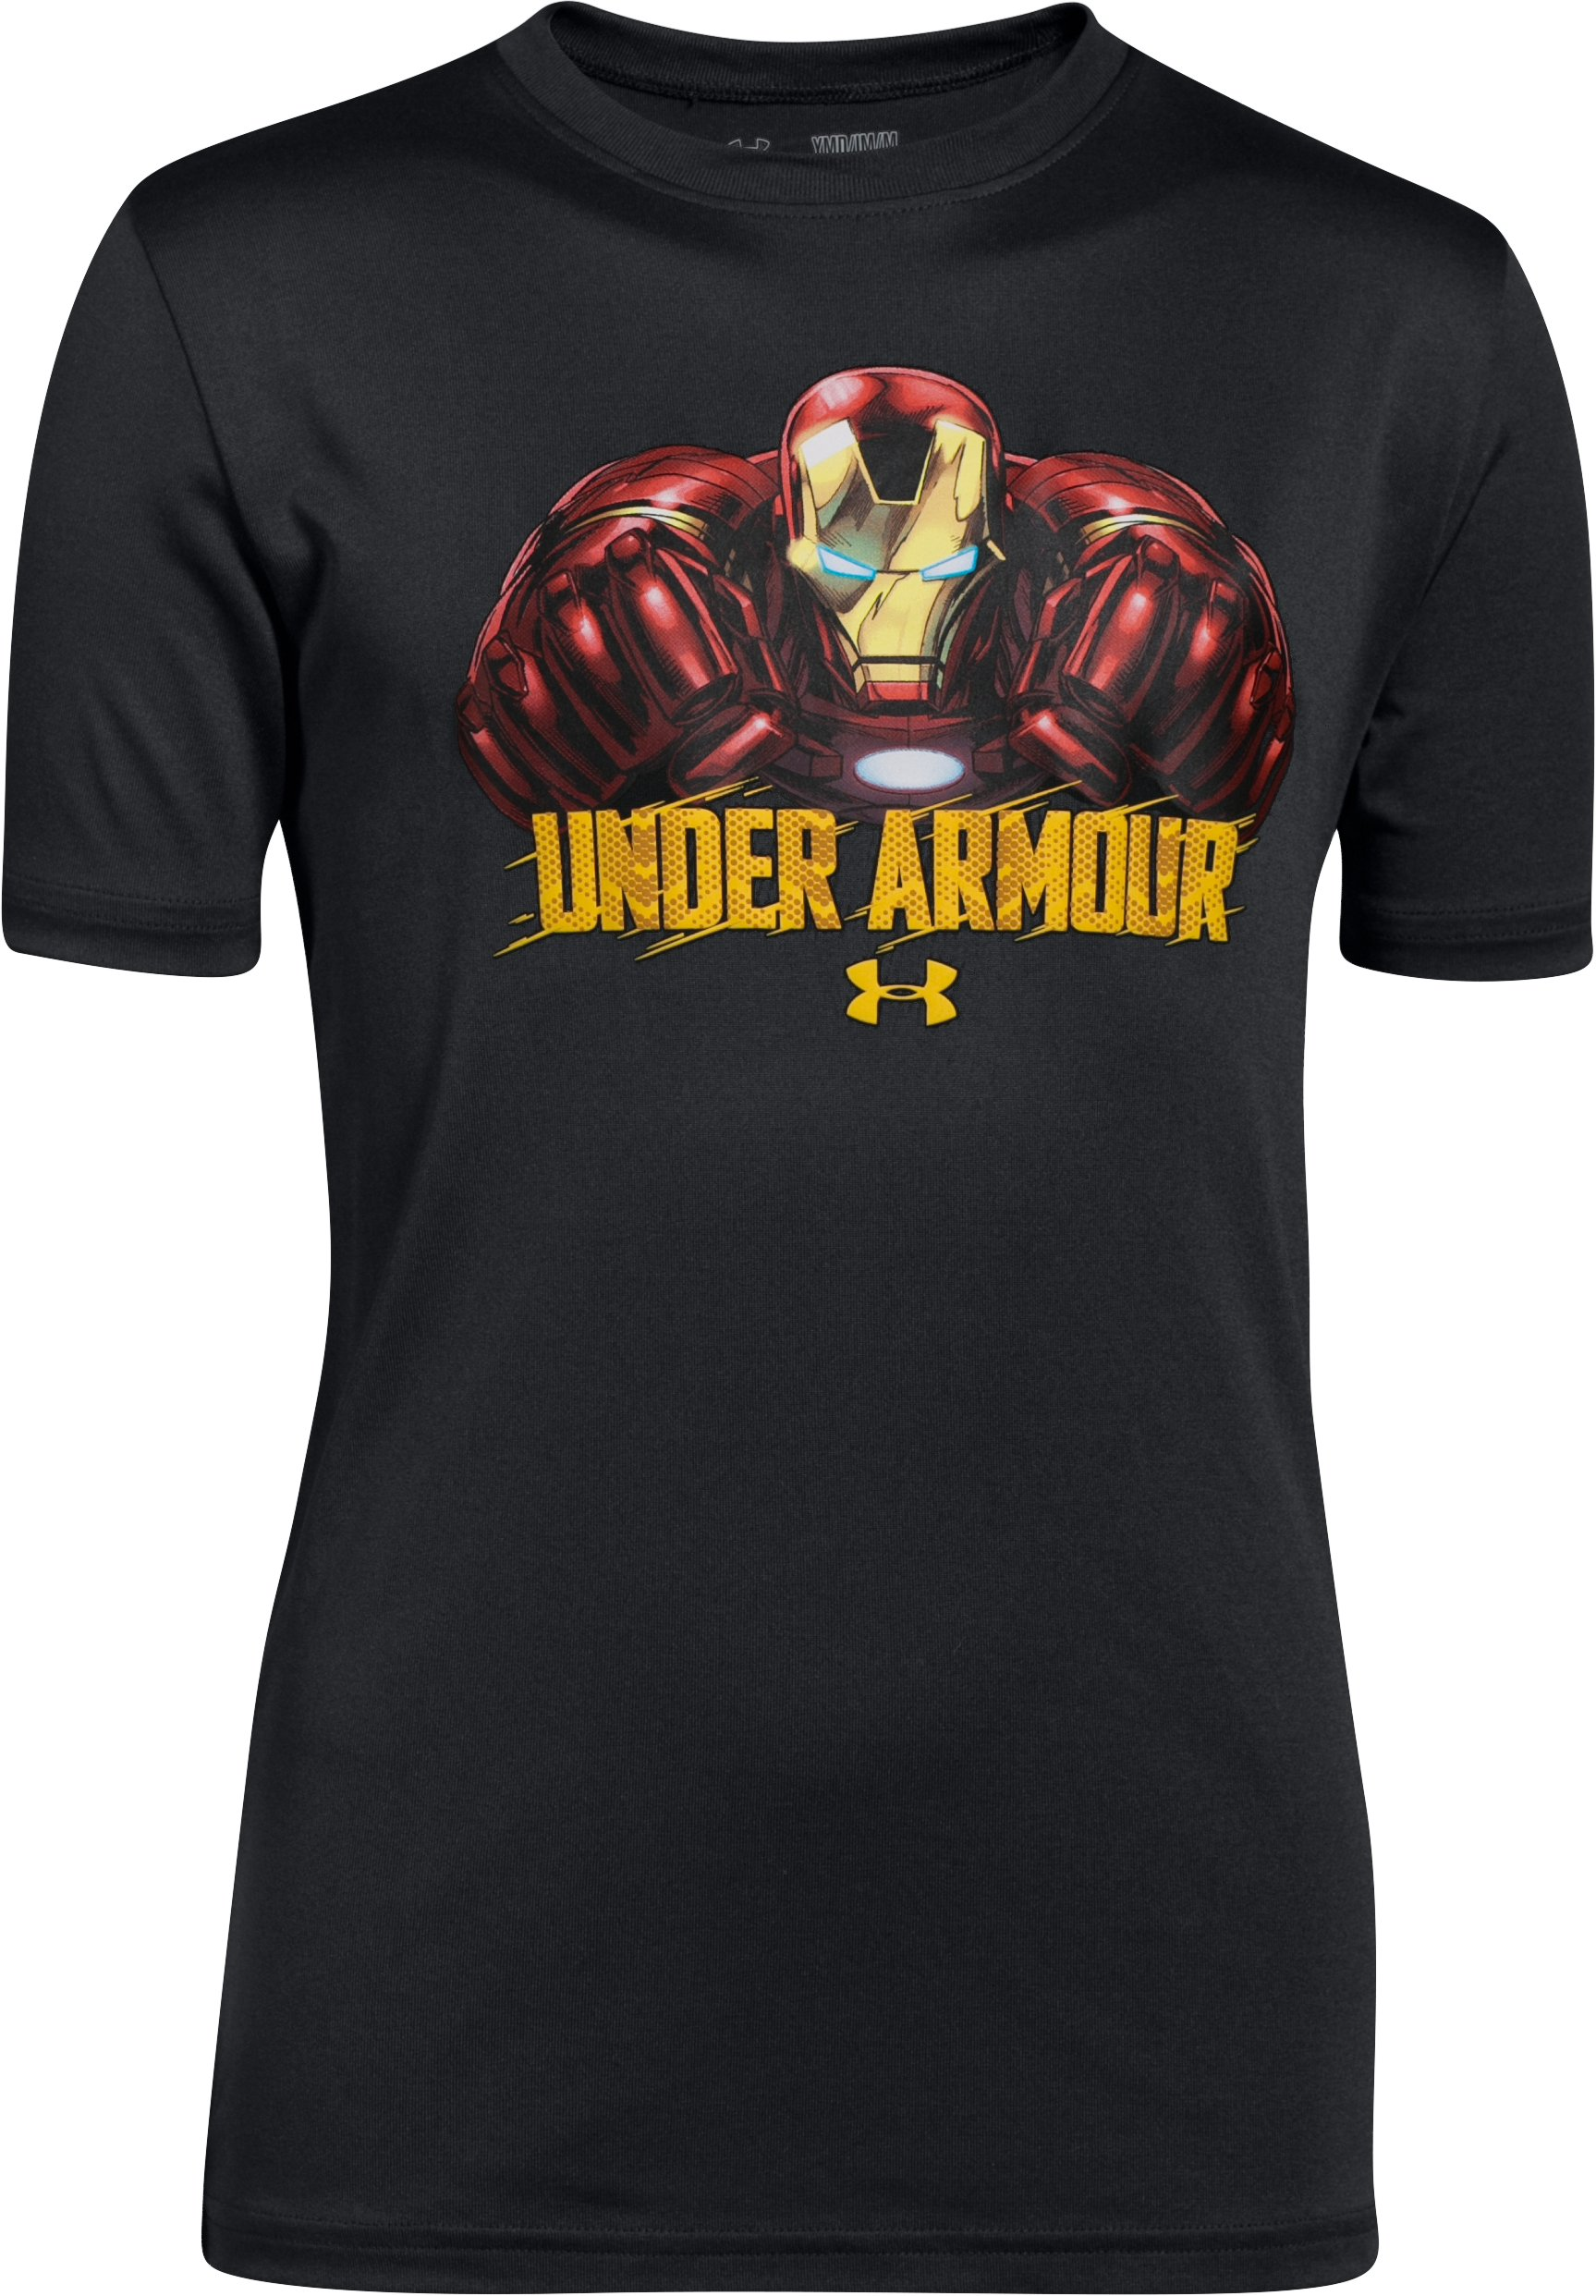 Boys' Under Armour® Alter Ego Iron Man T-Shirt, Black